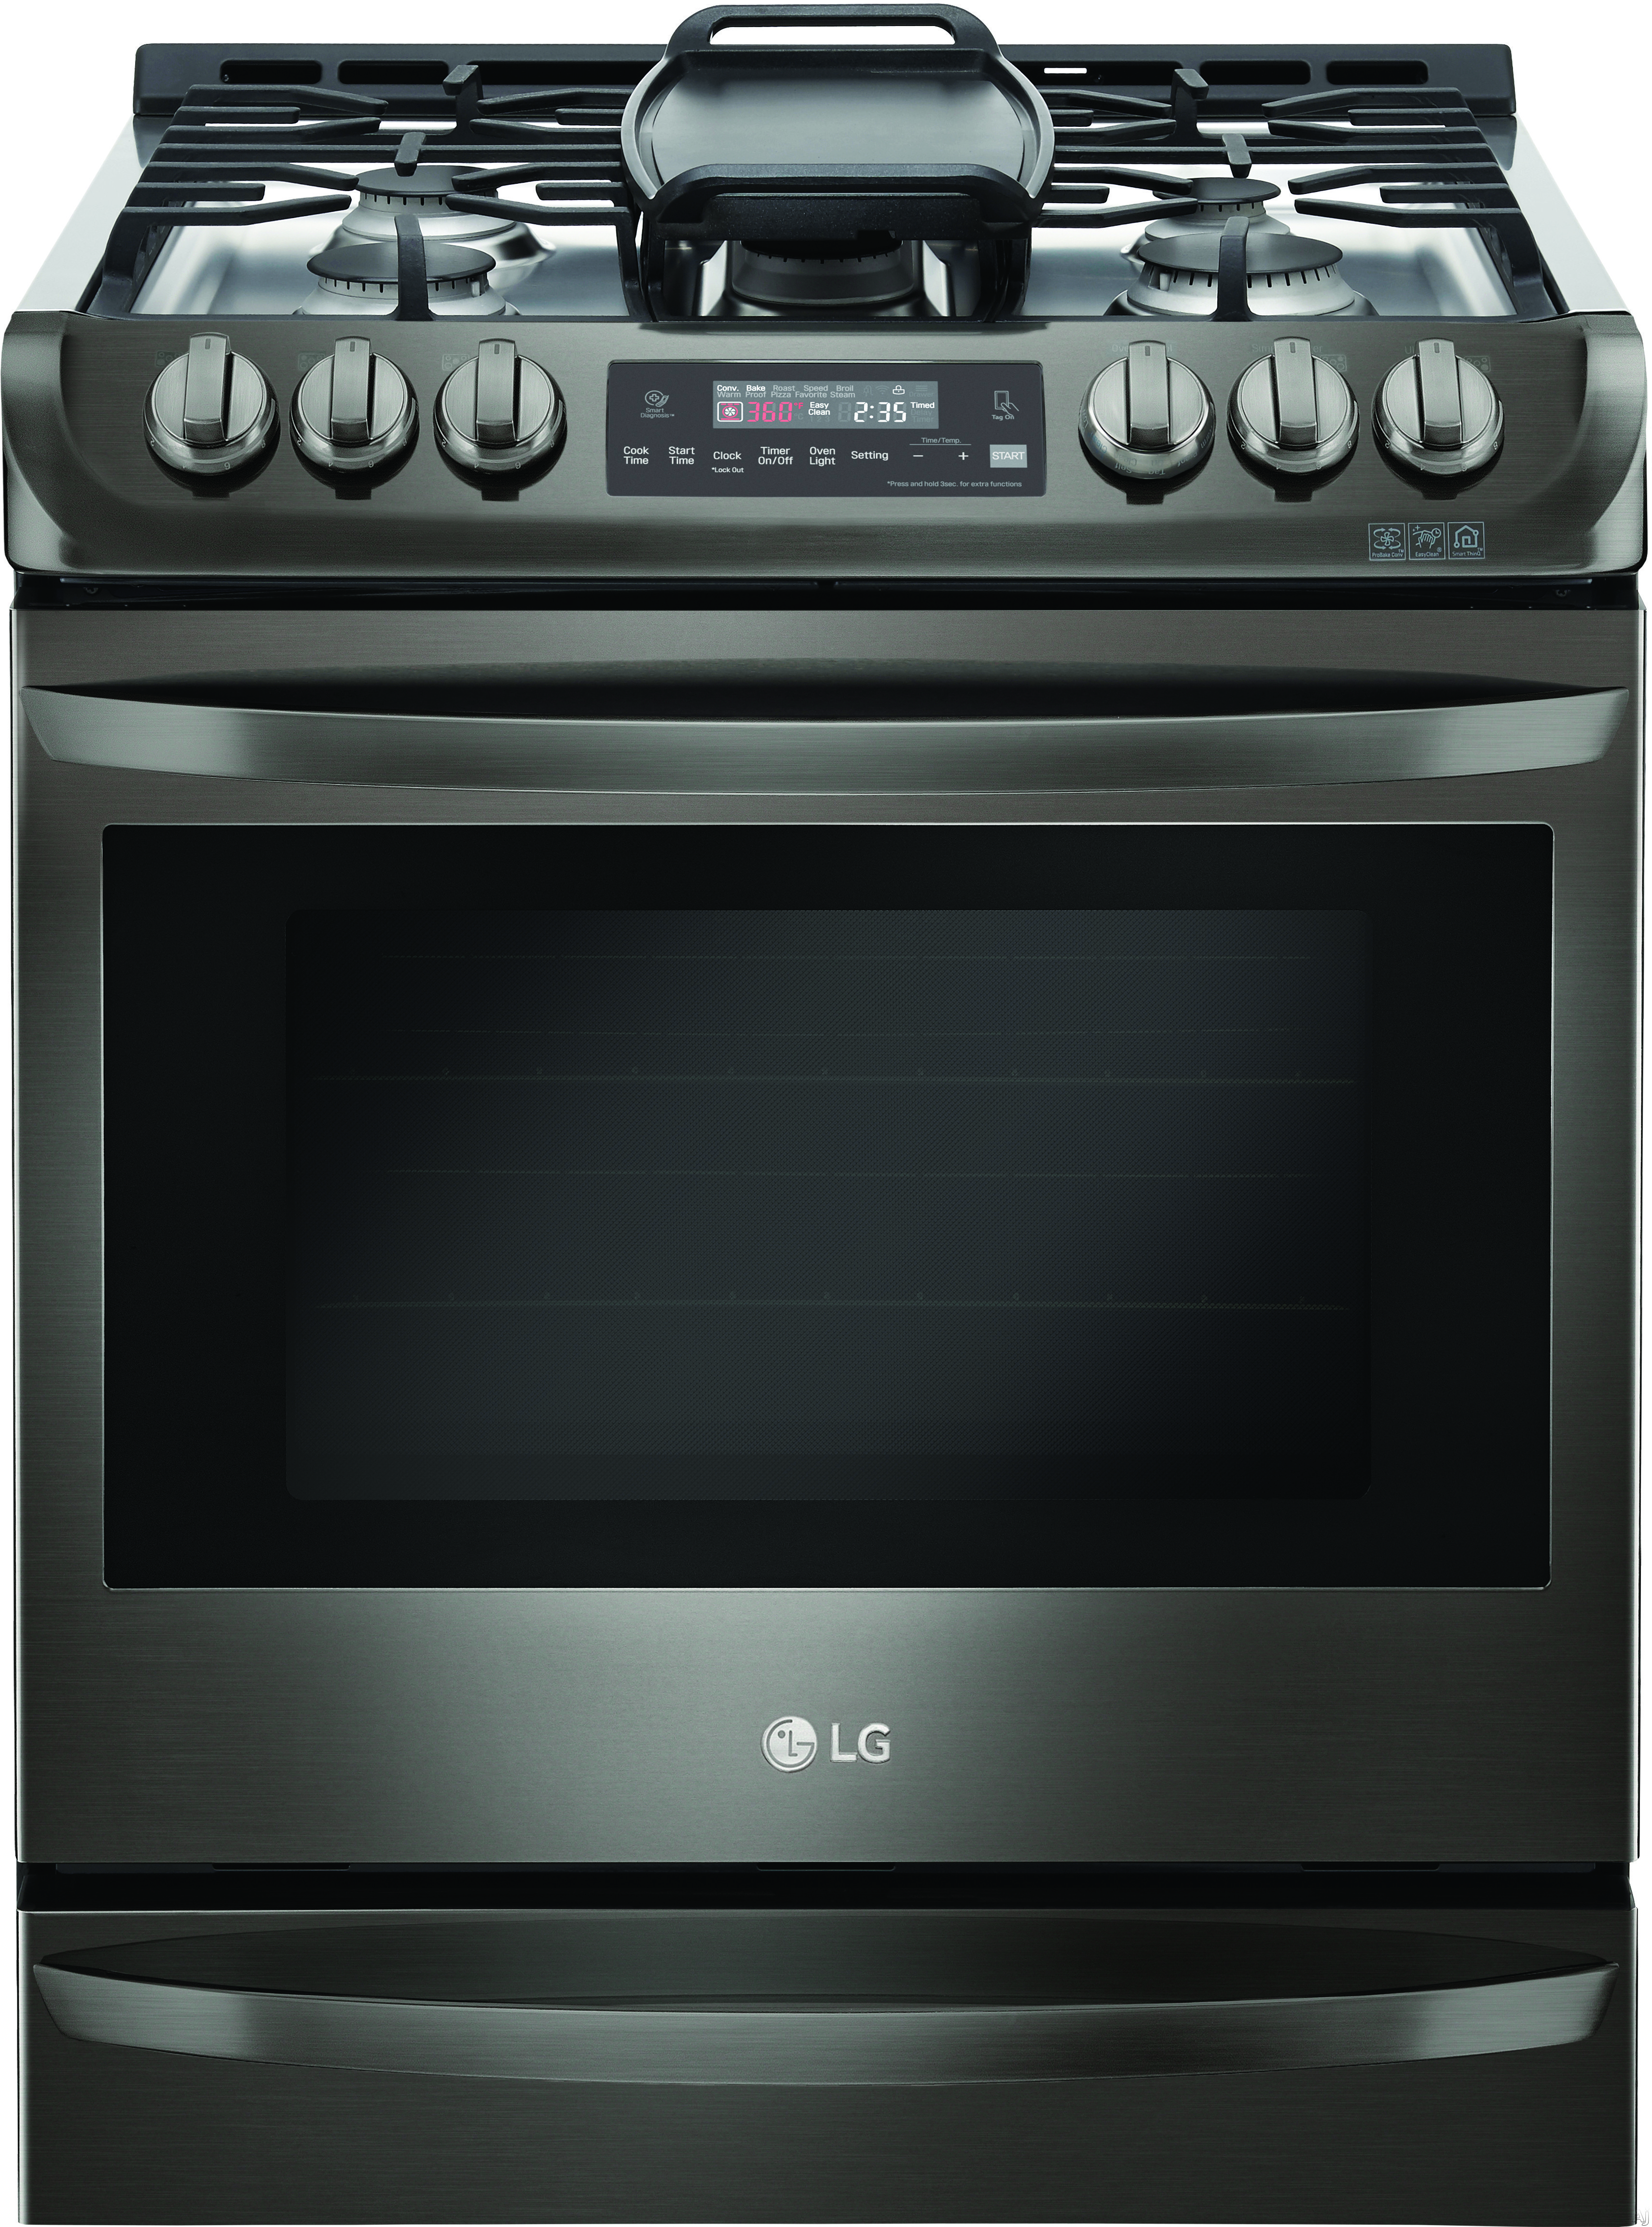 LG LSG4513BD 30 Inch Slide-in Gas Range with Convection®, LG UltraHeat Burner™, EasyClean®, 6.3 cu. ft. Capacity, 5 Sealed Burners, 11 Cooking Modes, Griddle and Storage Drawer: Black Stai